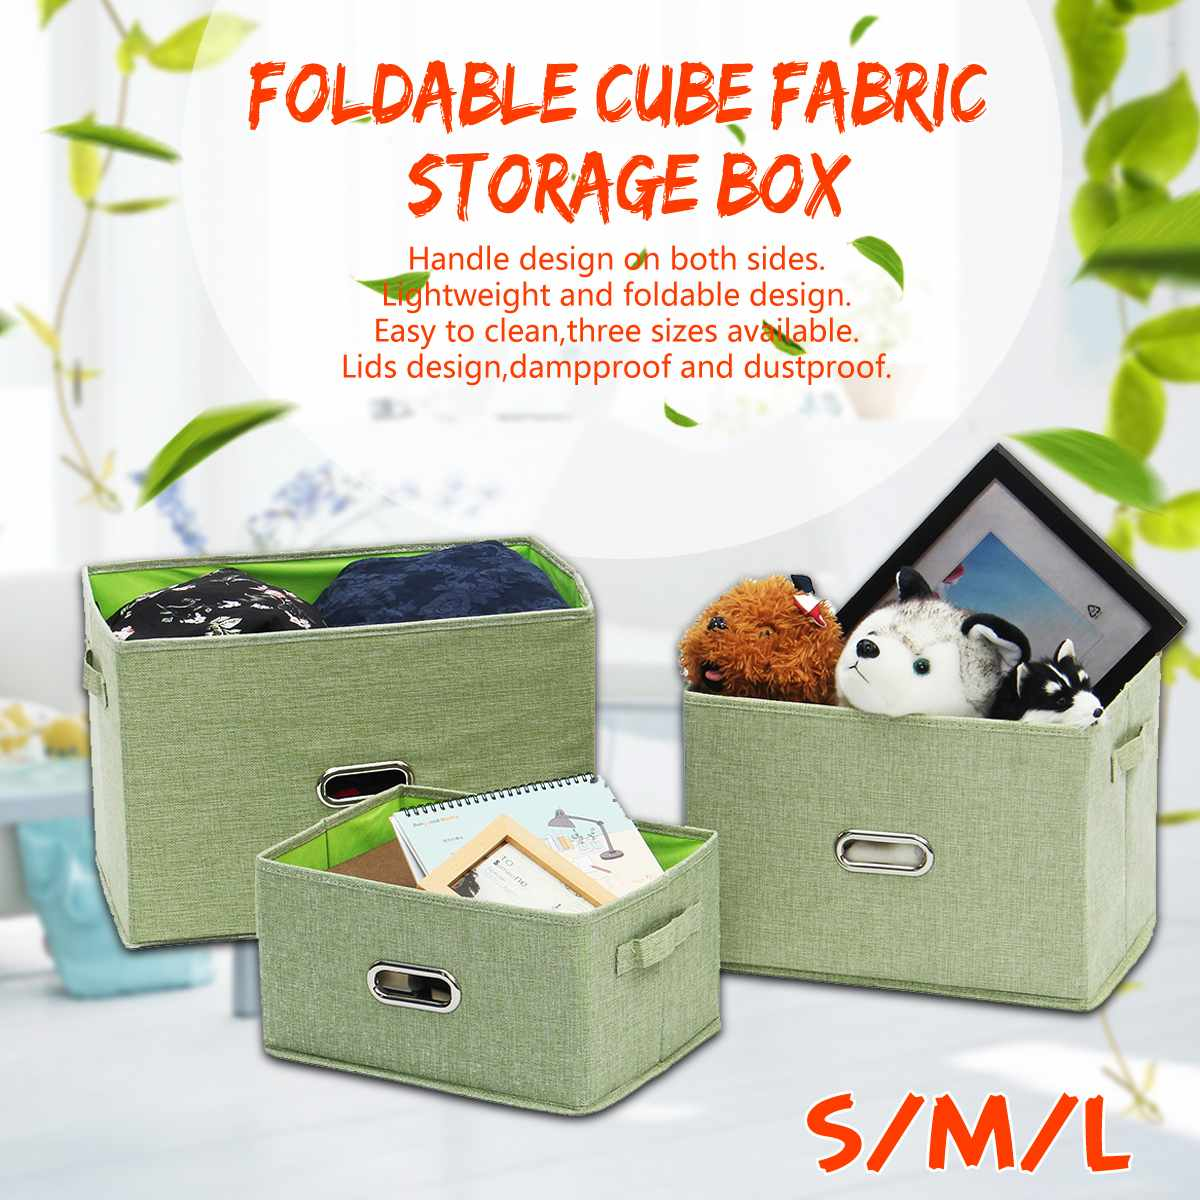 Us 35 09 48 Off Foldable Cube Fabric Storage Box Thickened For Home Officebook Underwear Bra Socks Ties Toys Basket Bins Containers On